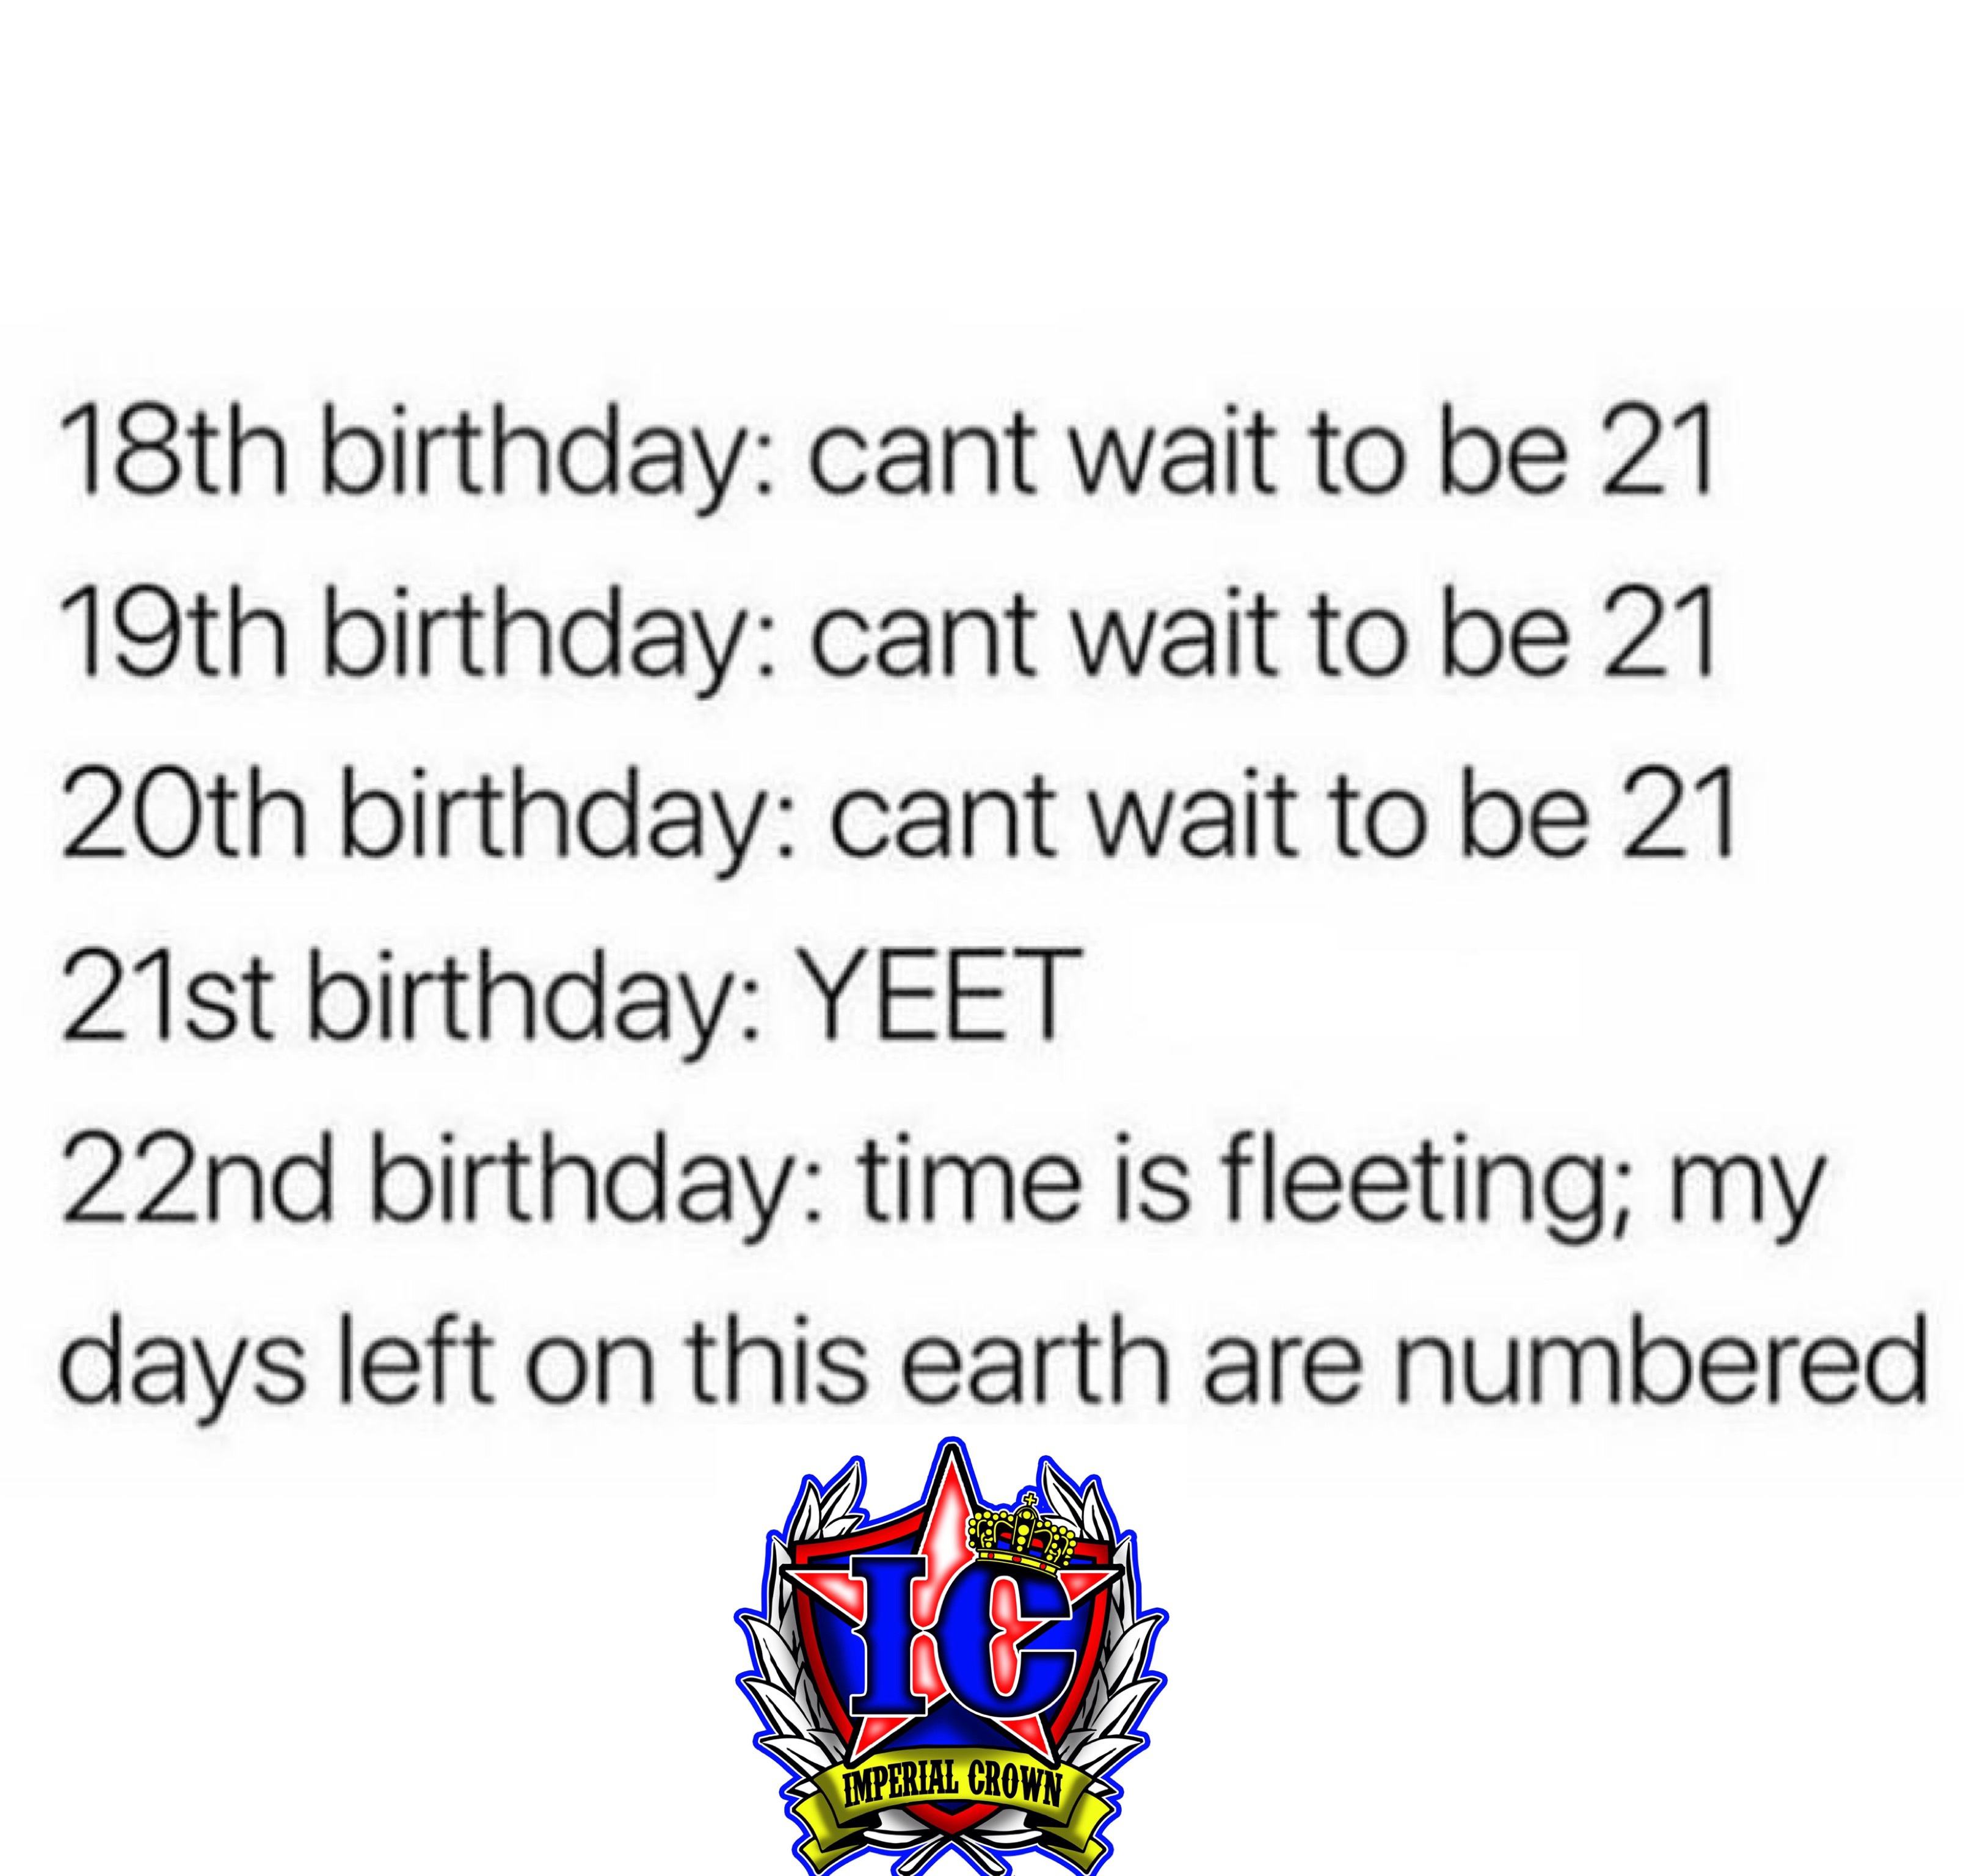 Can't wait to be 21…